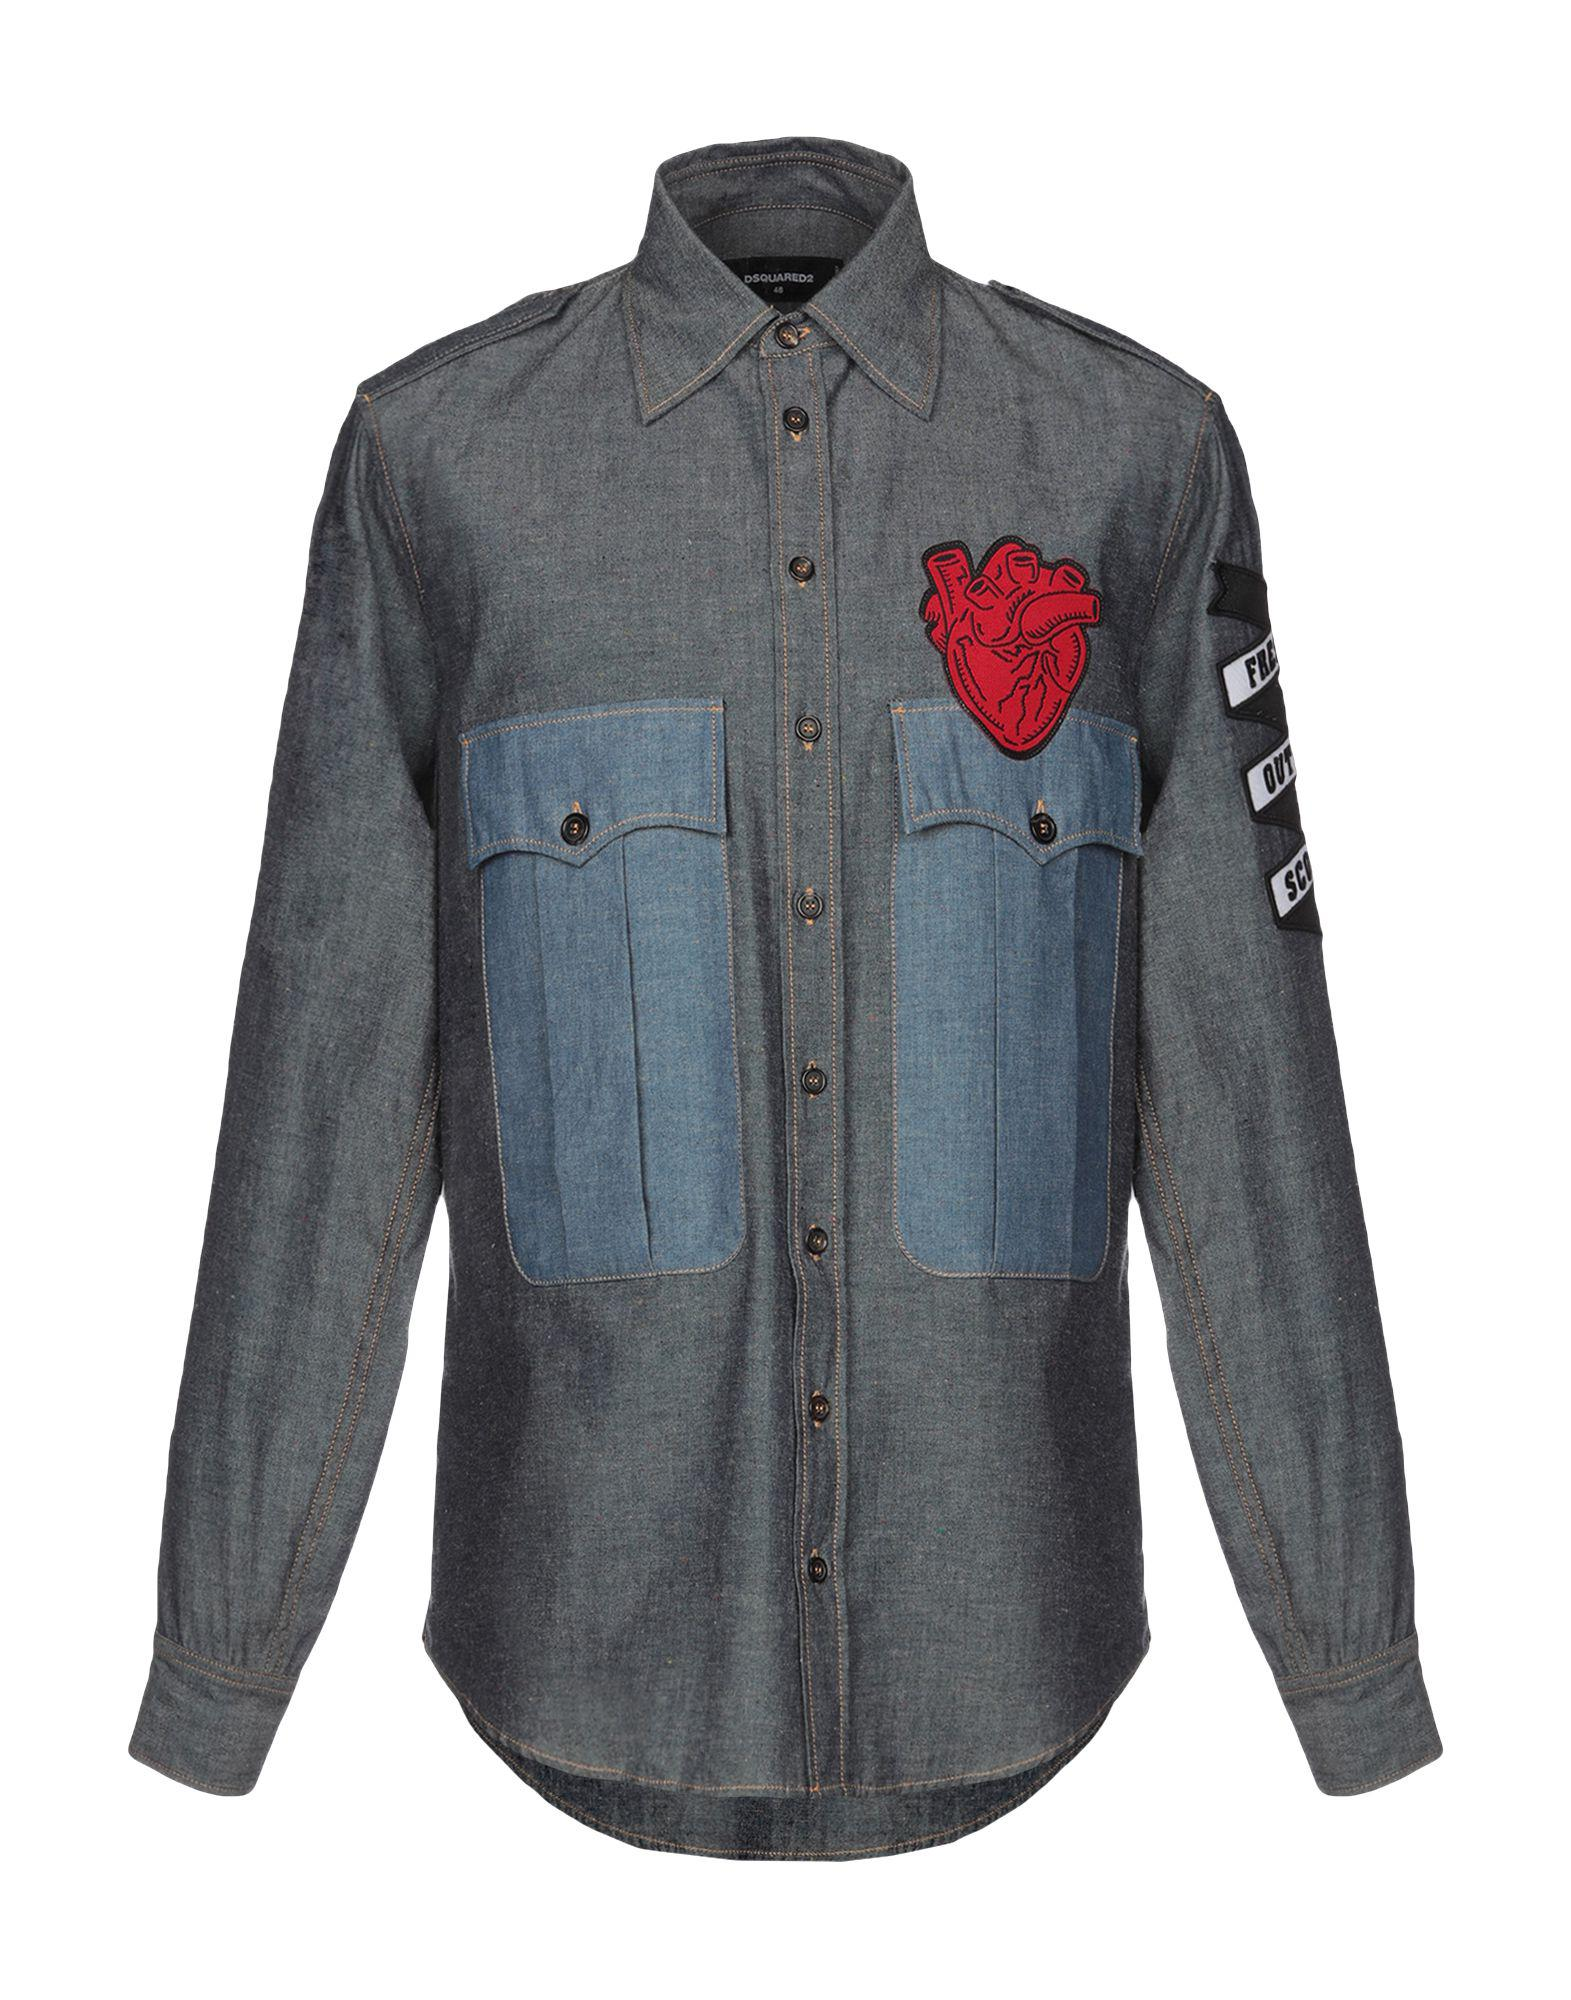 d30eb80378 Lyst - DSquared² Denim Shirt in Blue for Men - Save 20%